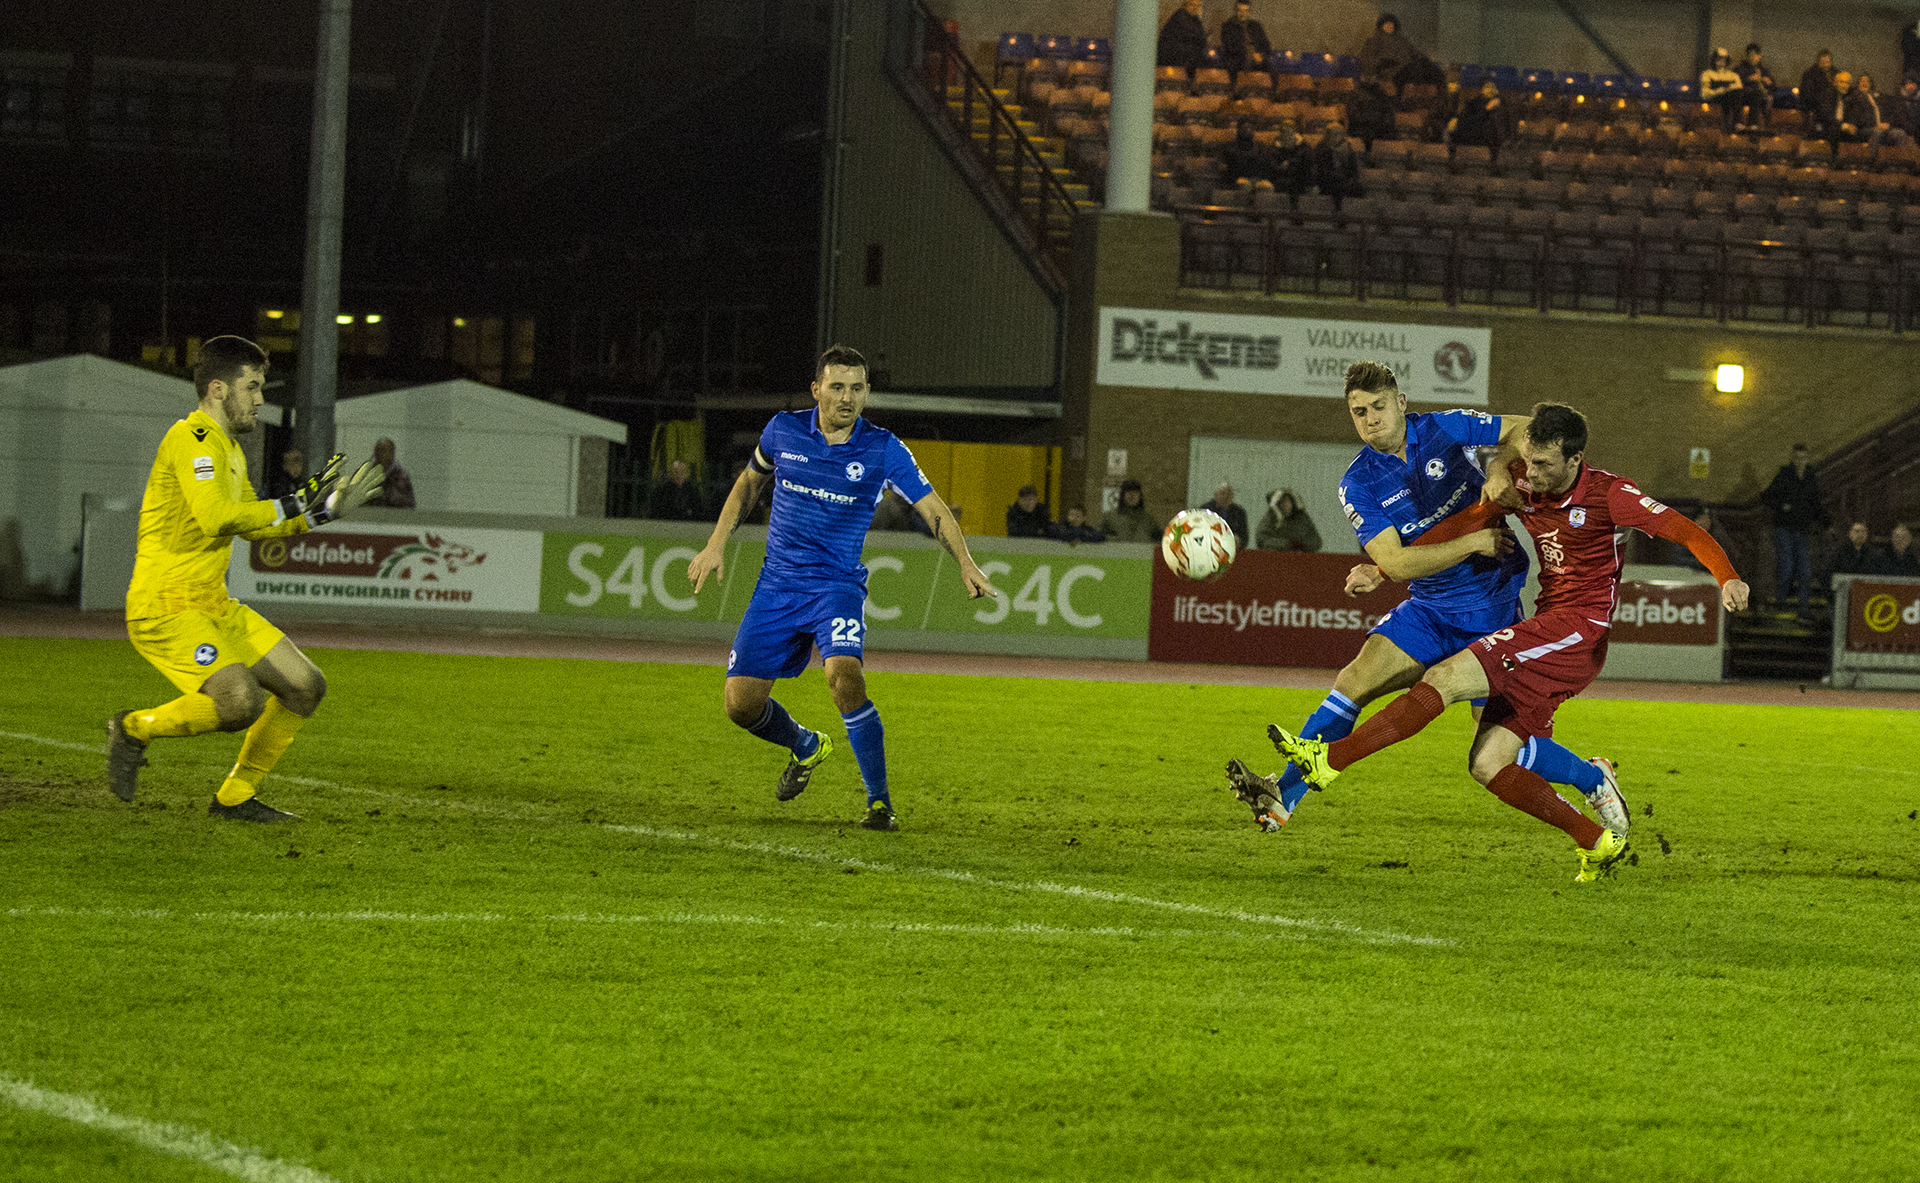 Matty Williams scoops the ball over the bar shortly after his goal - © NCM Media